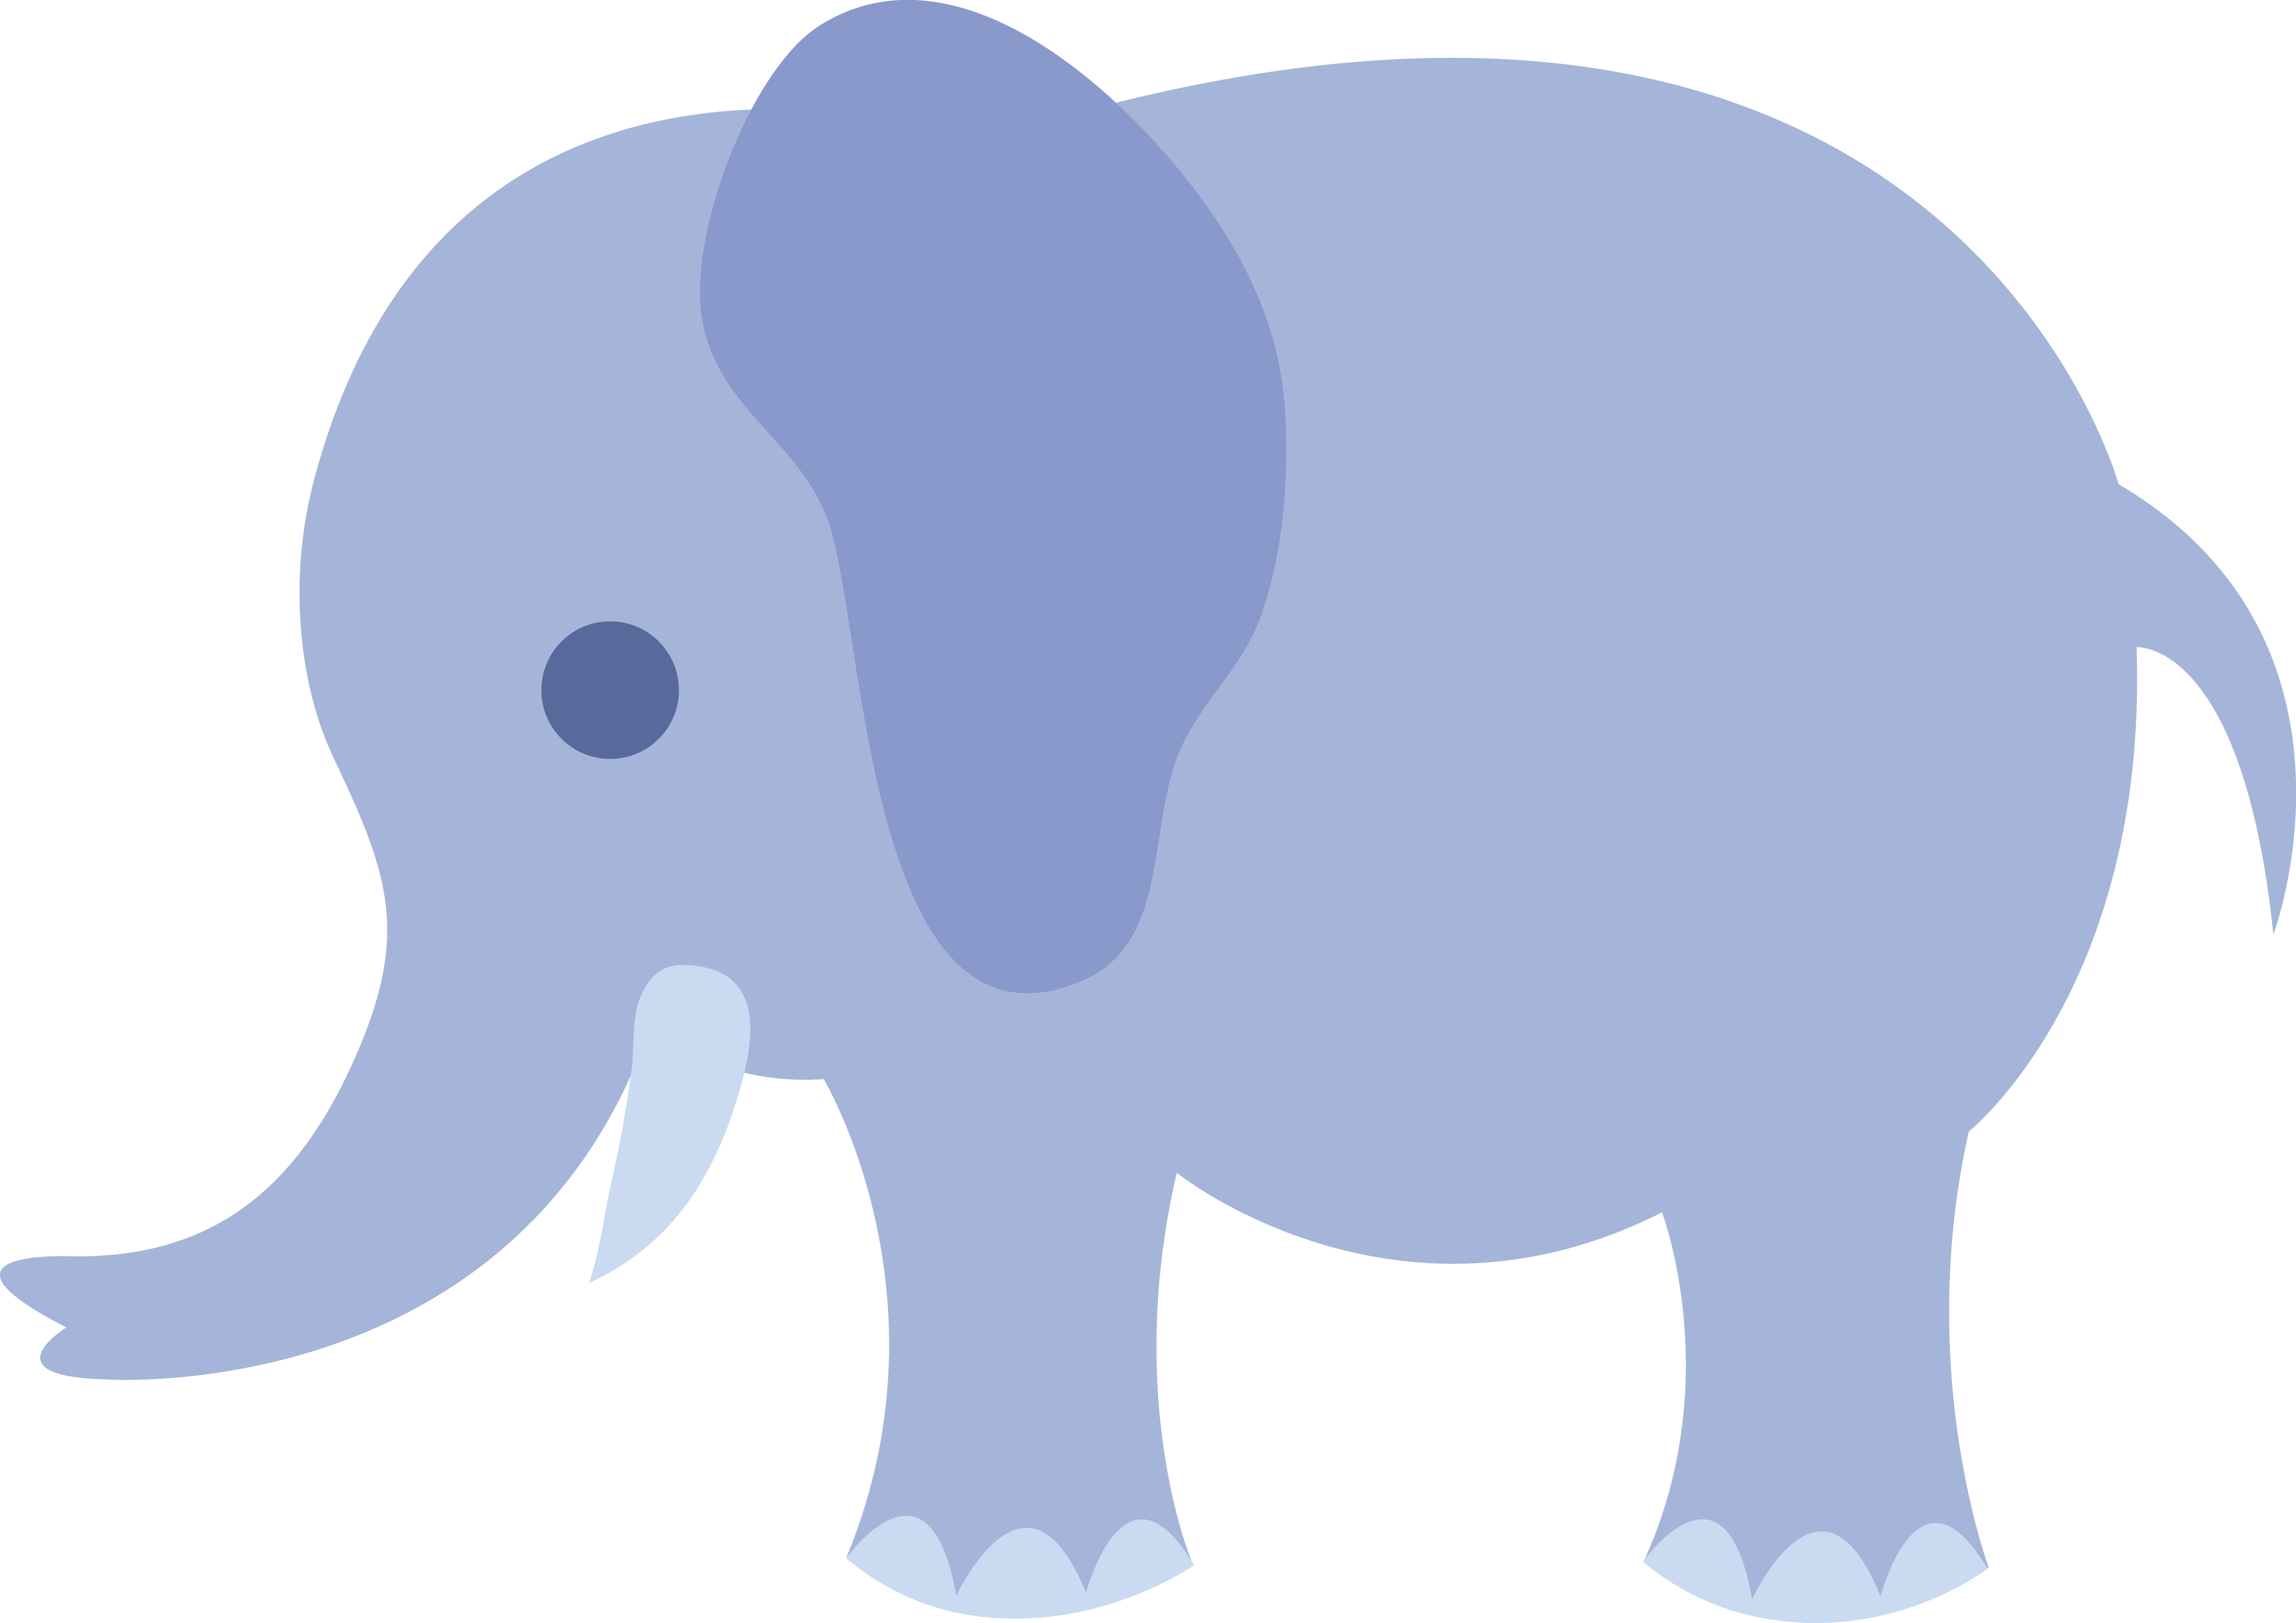 Alabama football elephant clipart svg transparent Google Image Result for http://sweetclipart.com/multisite ... svg transparent